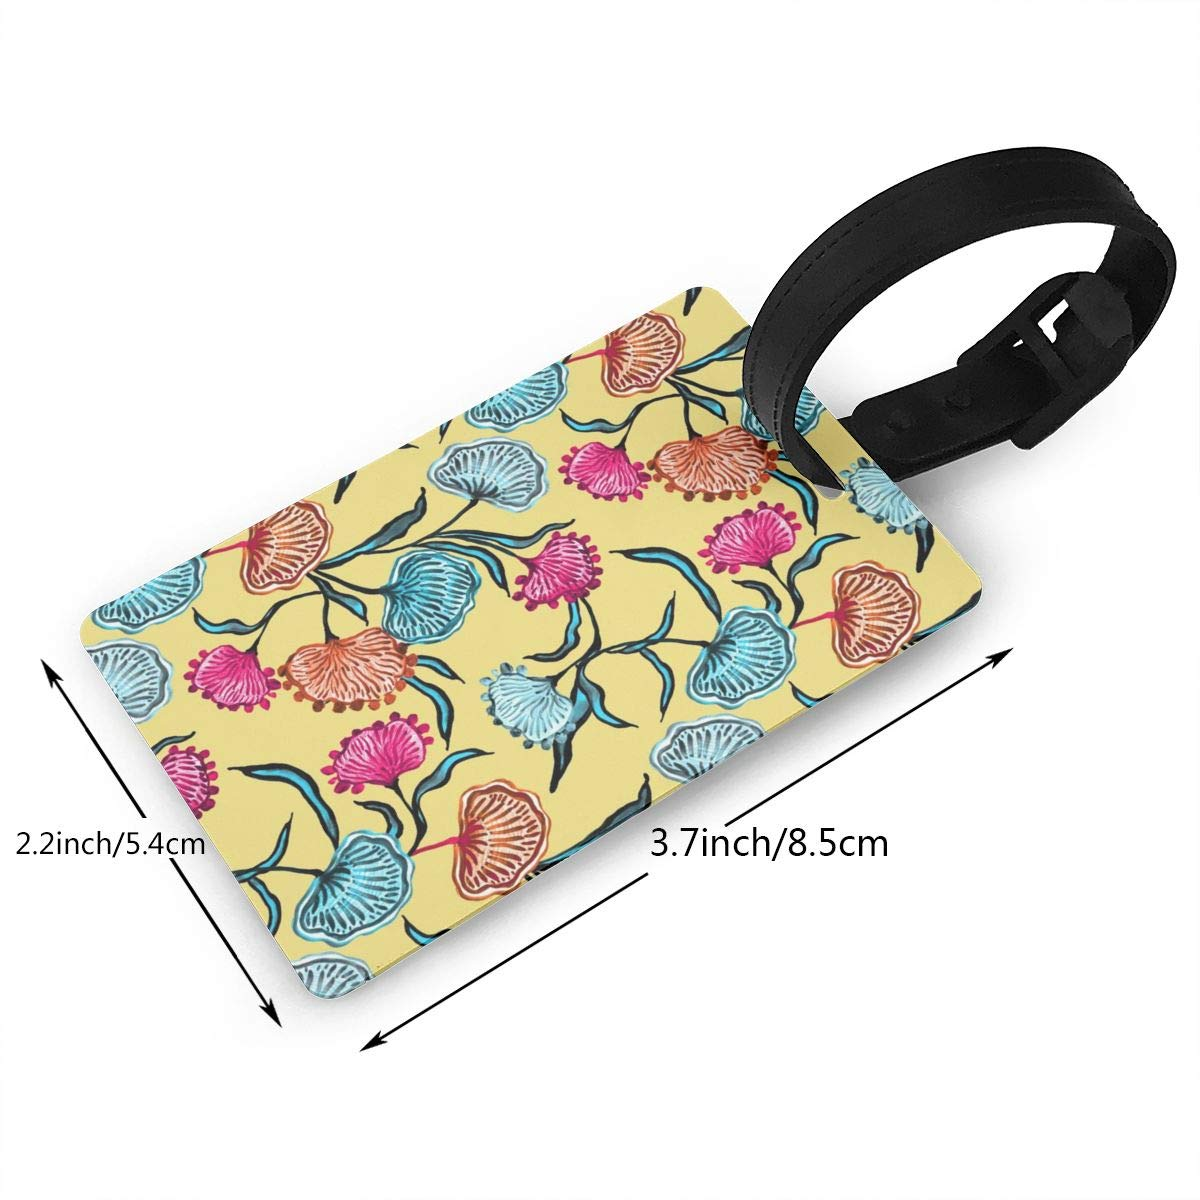 2 Pack Luggage Tags Floral Tropical Handbag Tag For Travel Tags Accessories